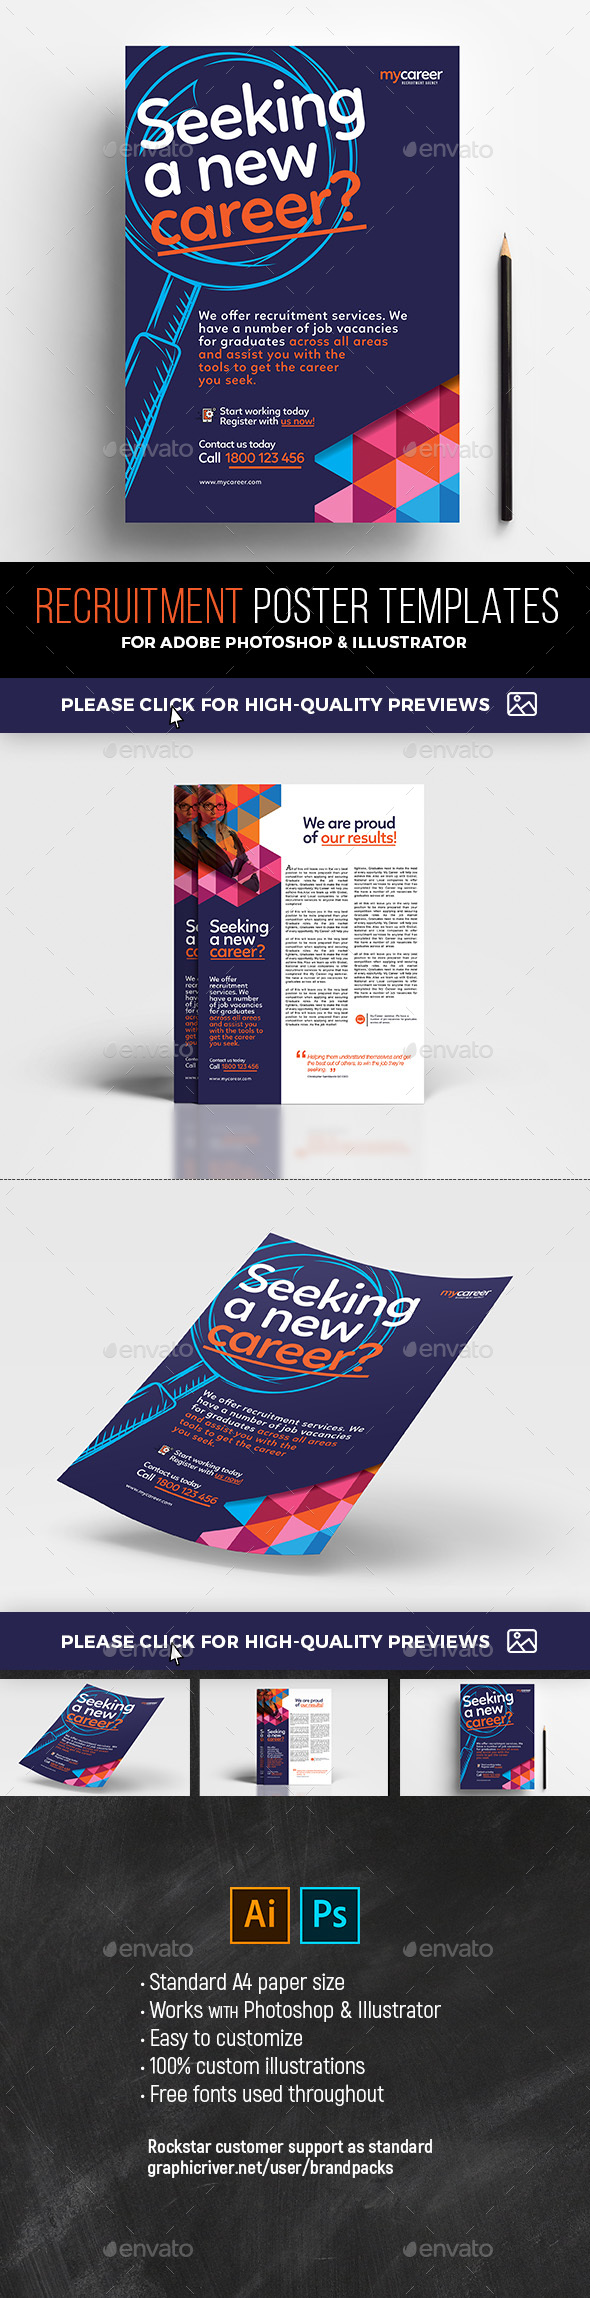 Recruitment Agency Poster Templates - Corporate Flyers